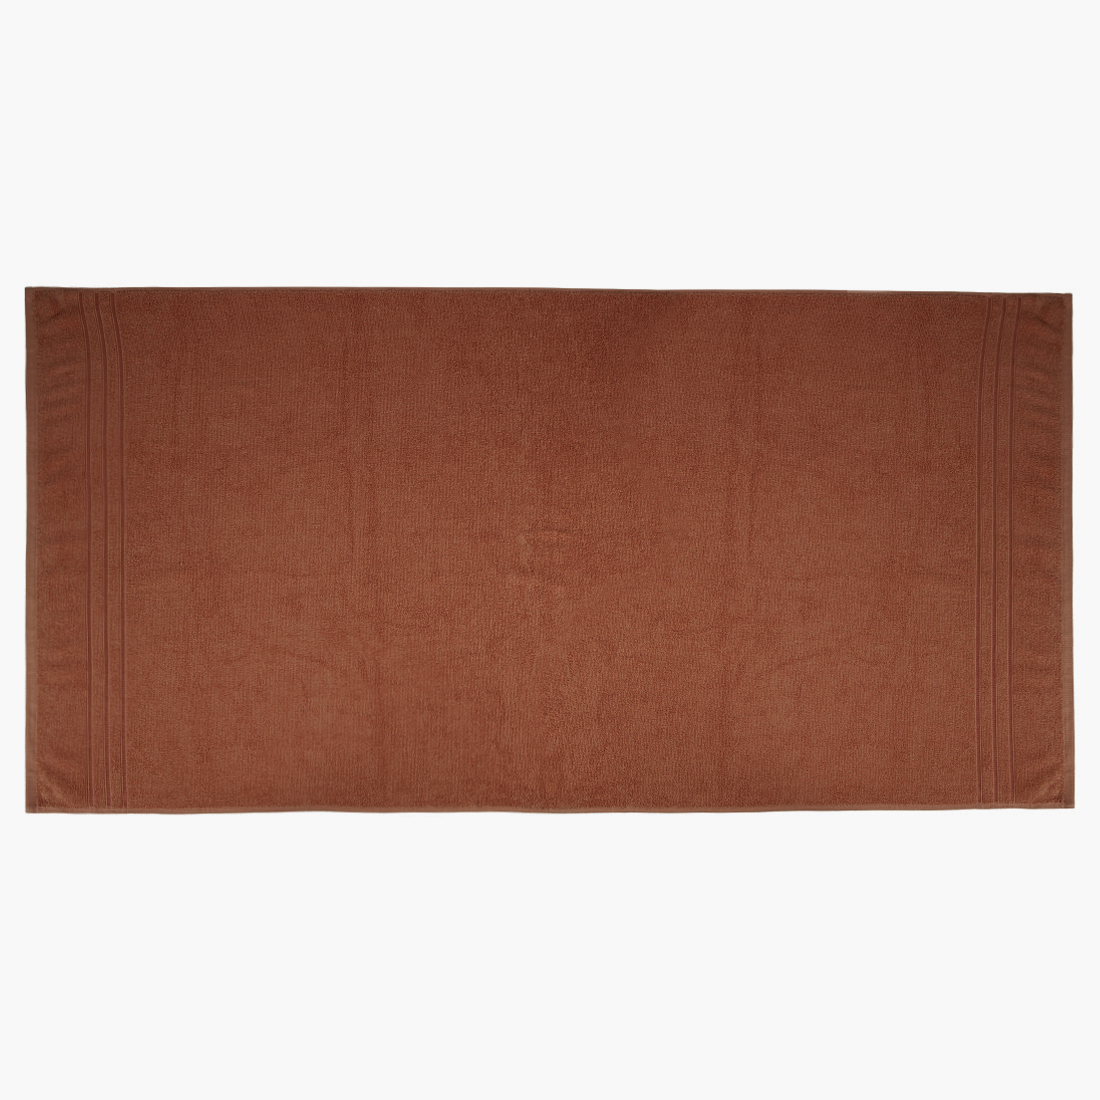 Bath Towel Nora Brown Cotton Bath Towels in Brown Colour by Living Essence